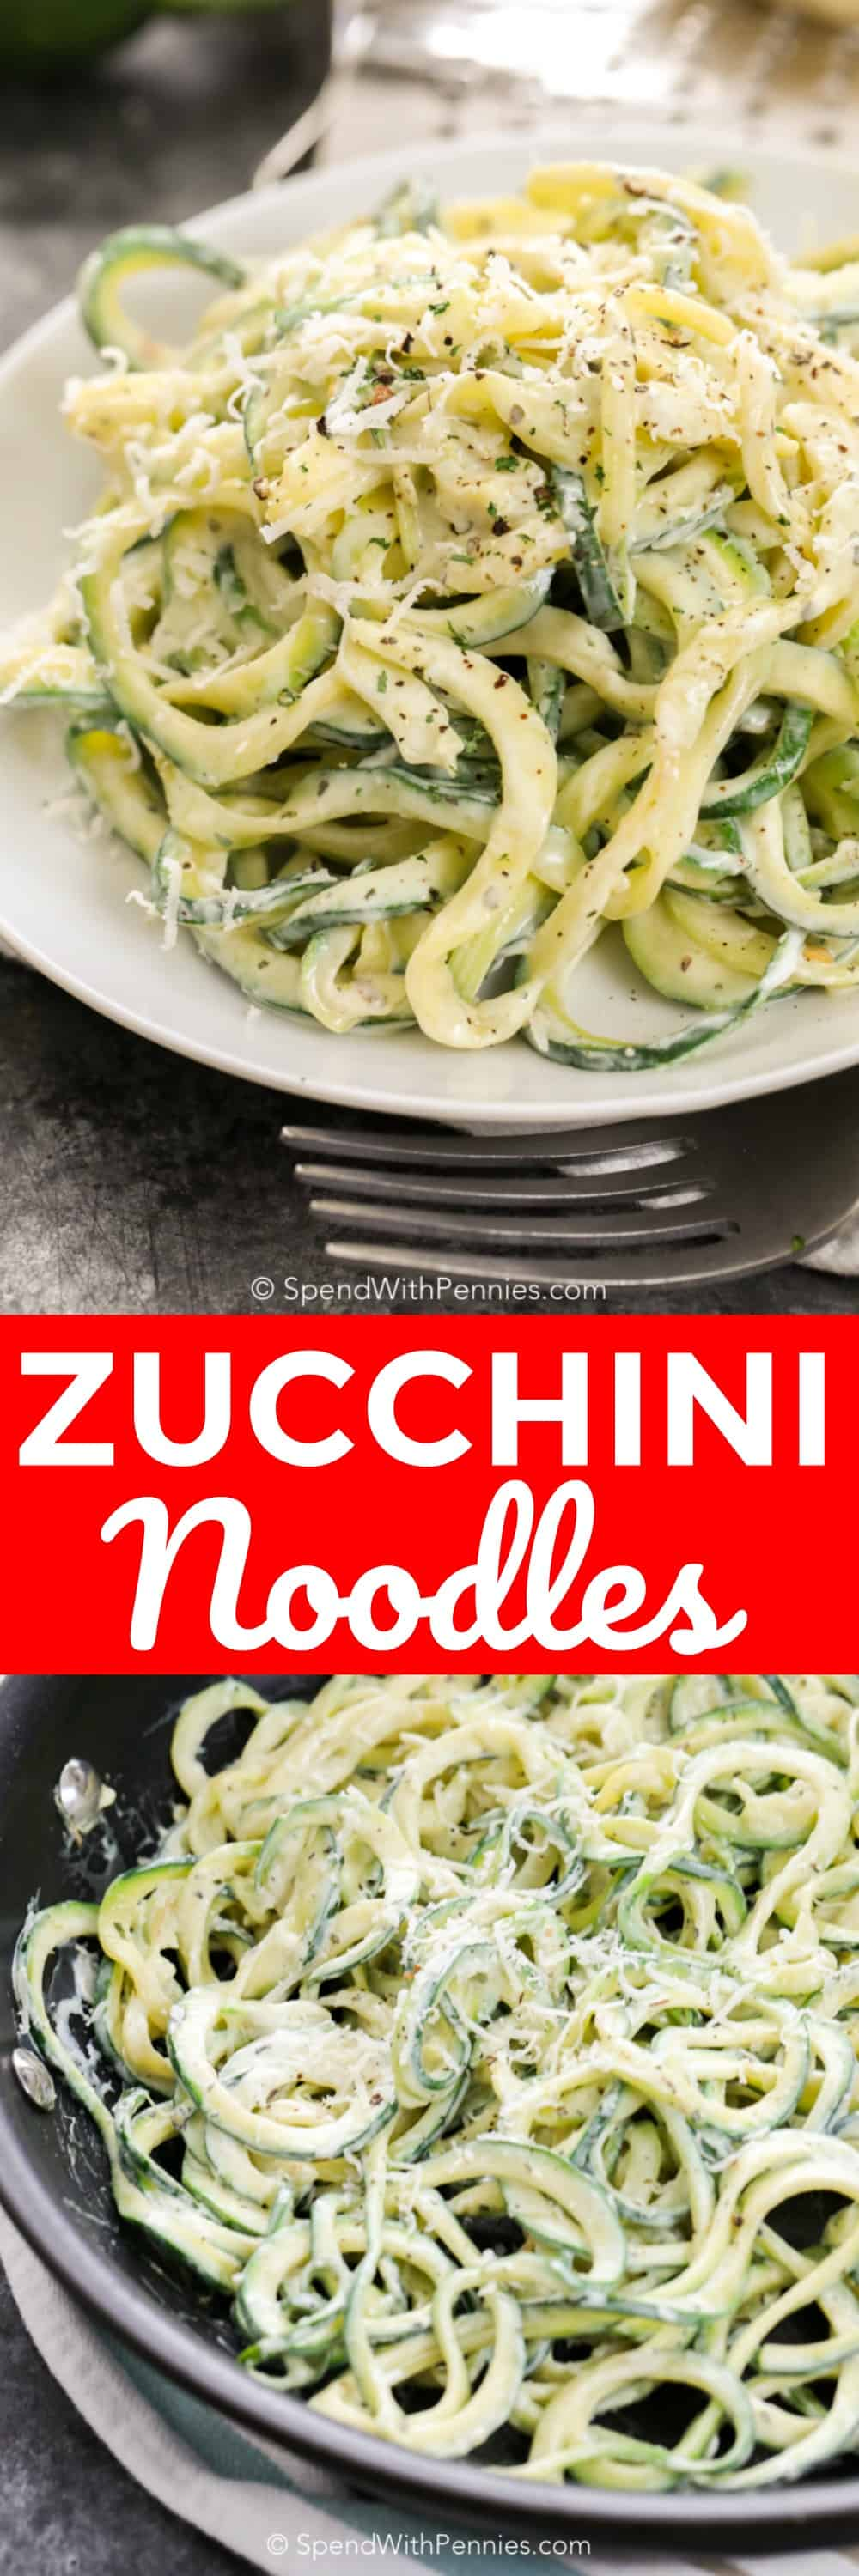 Creamy Zucchini Noodles with writing